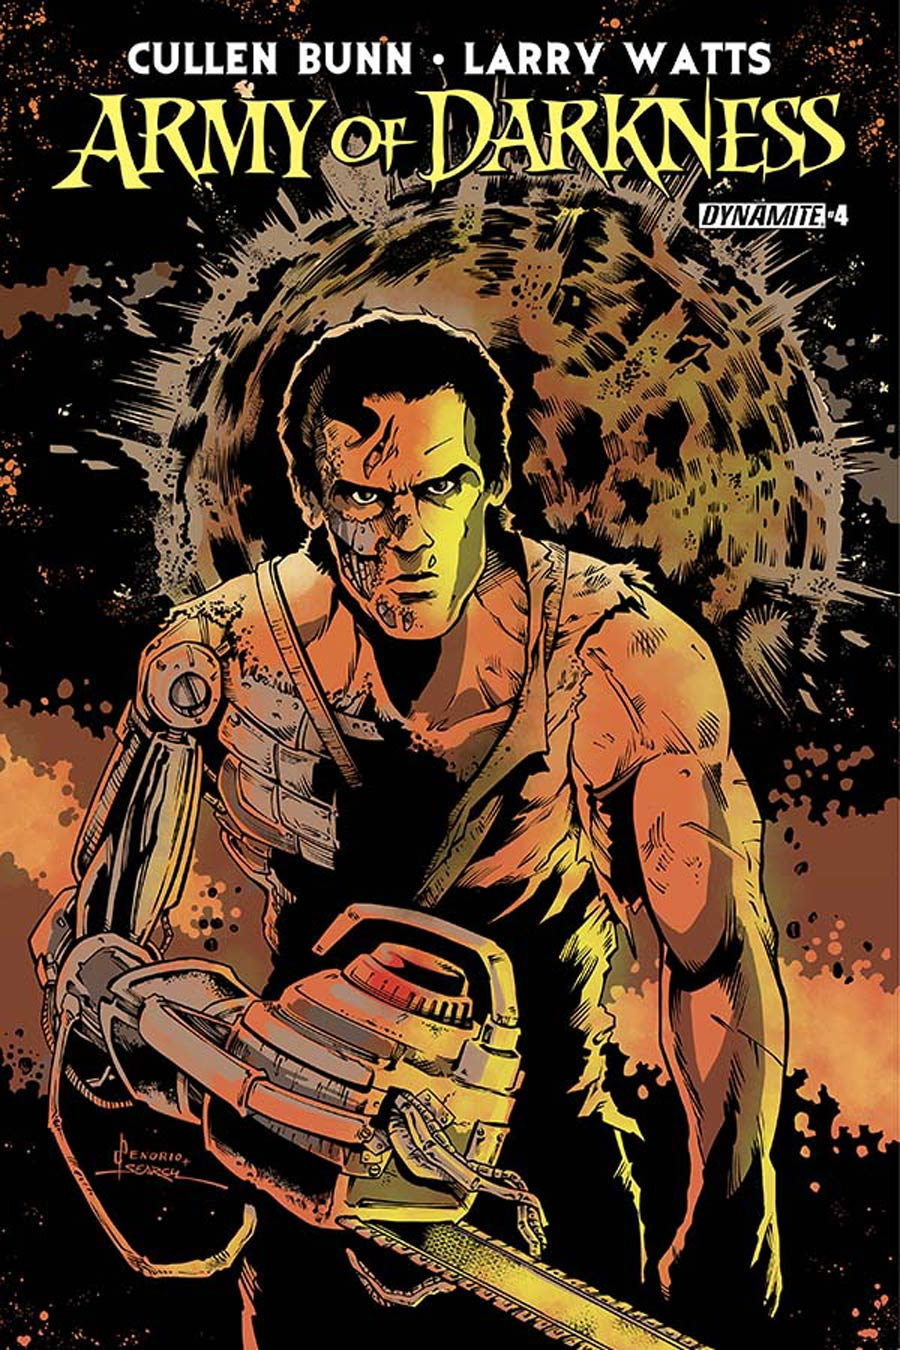 Army Of Darkness Vol 4 #4 Cover C Variant Nacho Tenorio Subscription Cover